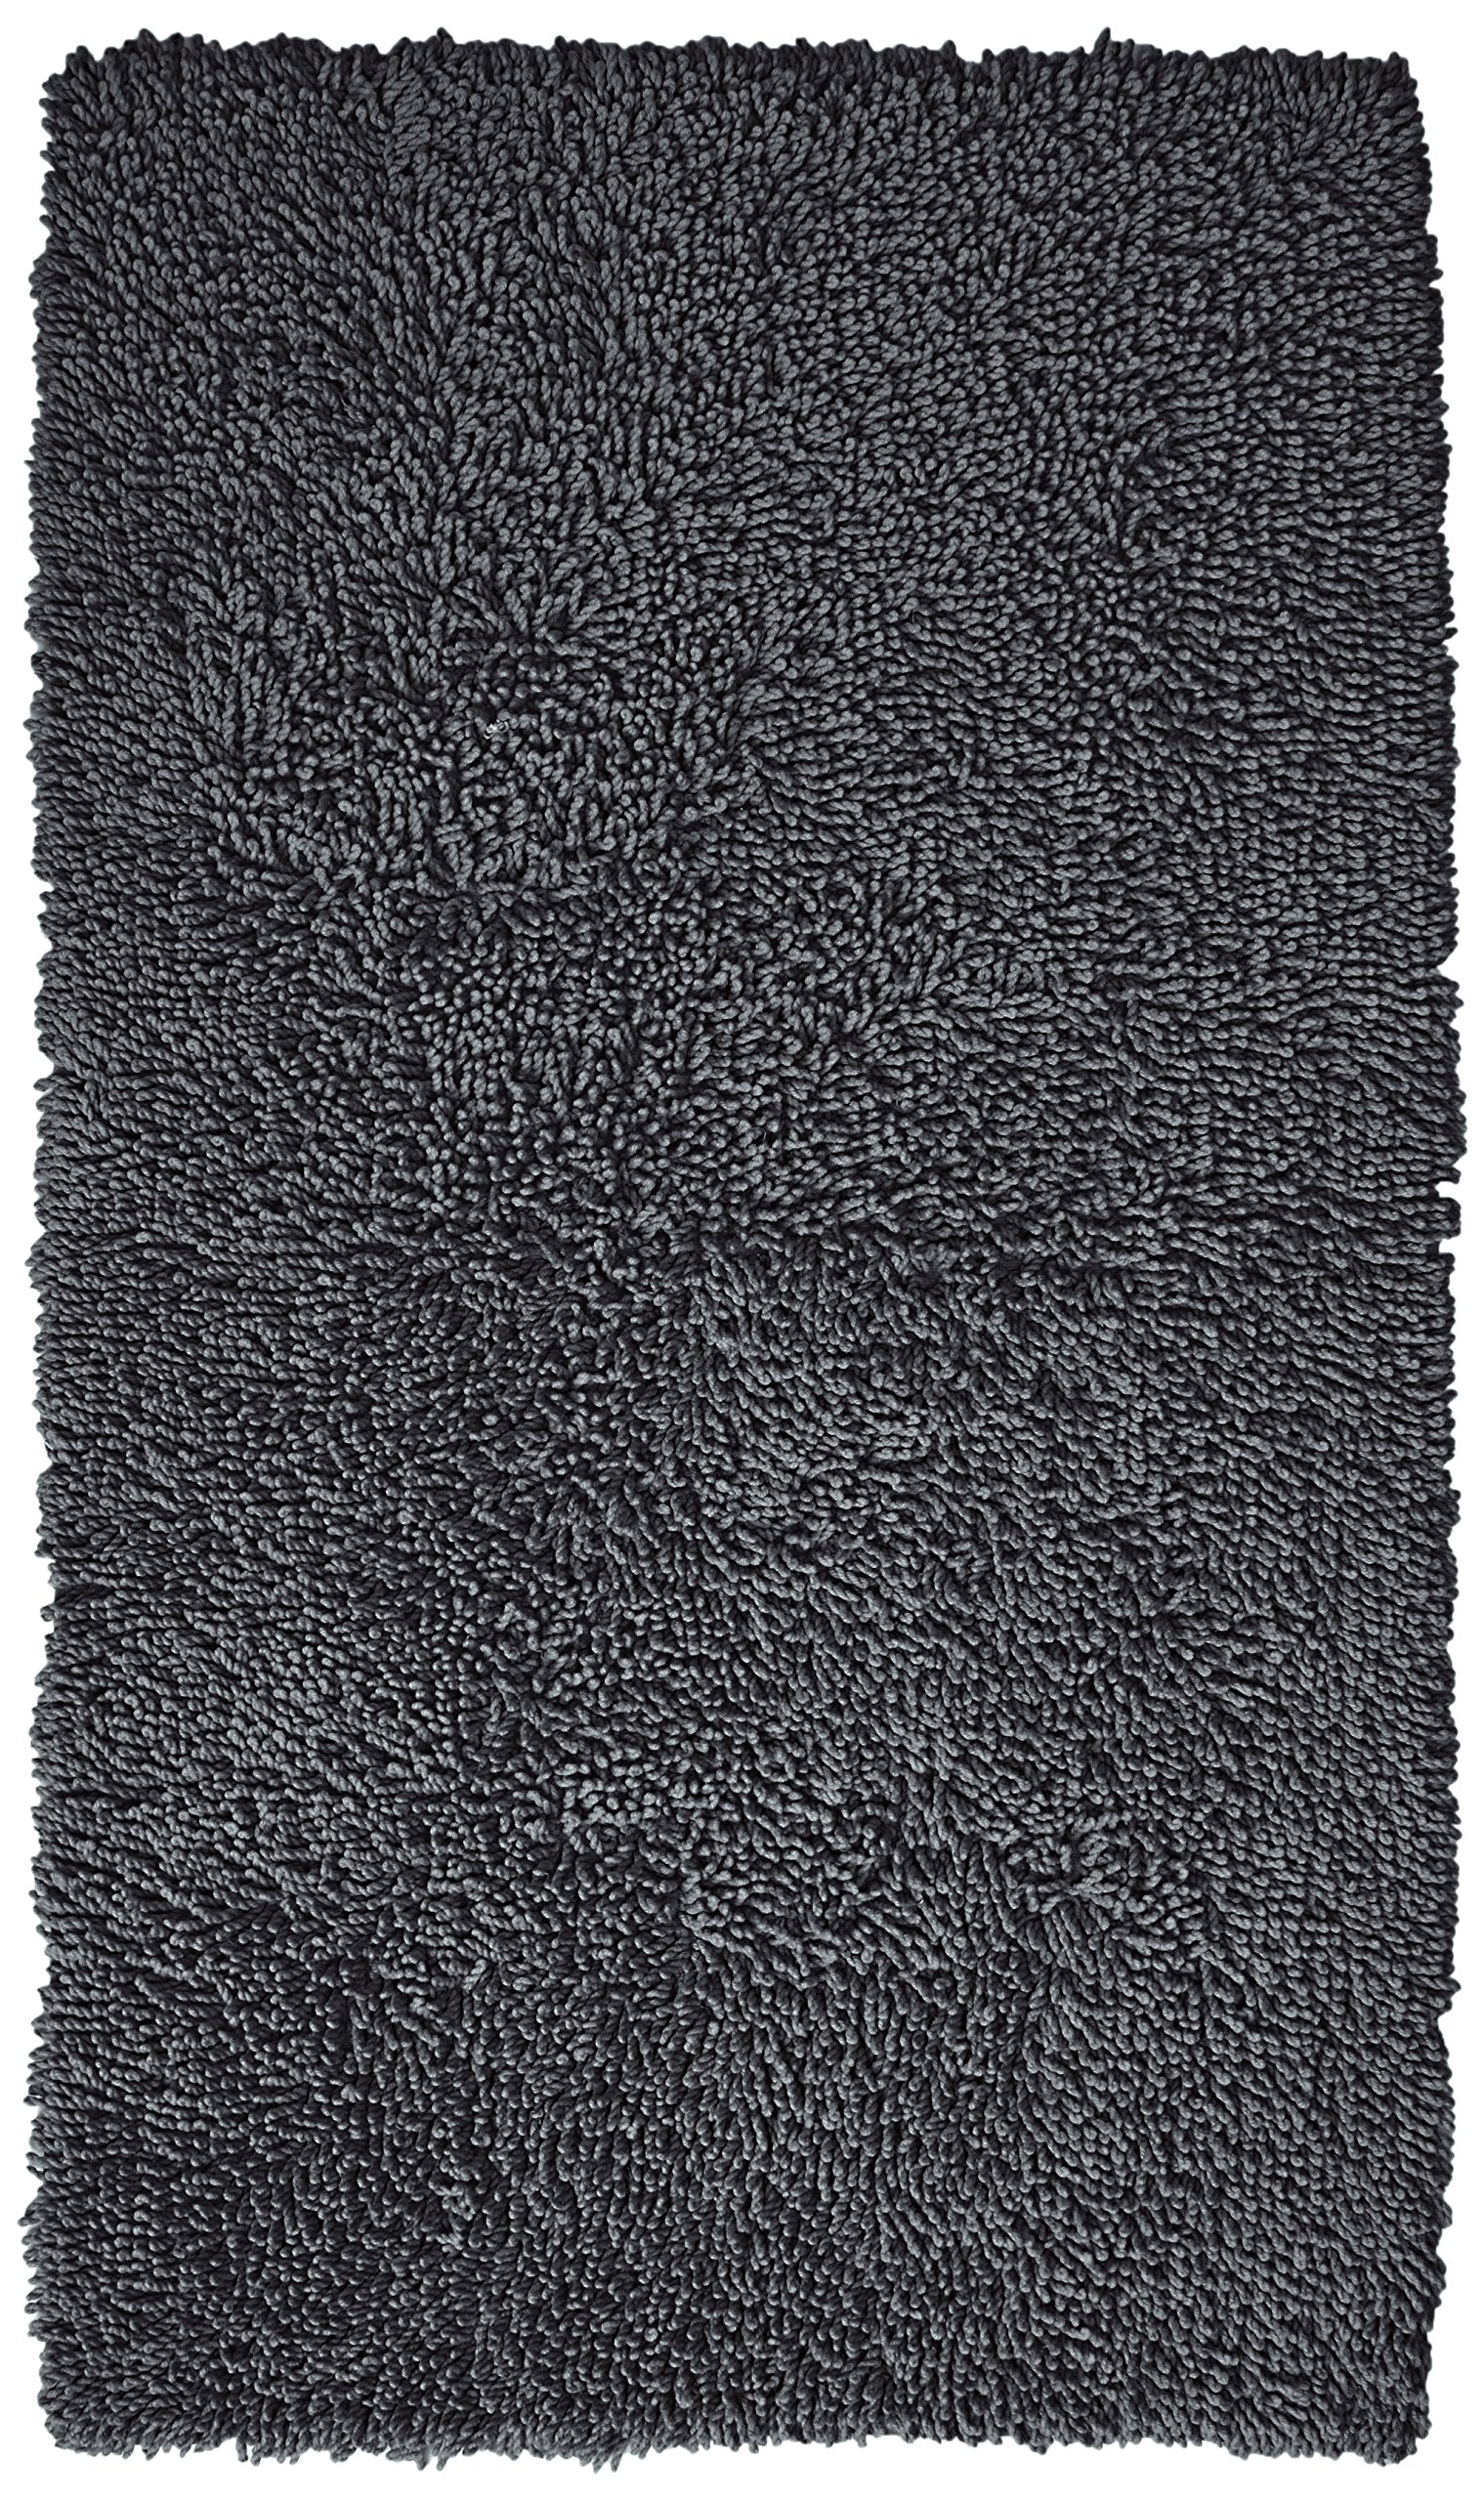 Pinzon 100% Cotton Looped Bath Rug with Non-Slip Backing - 30 x 50 inch, Platinum